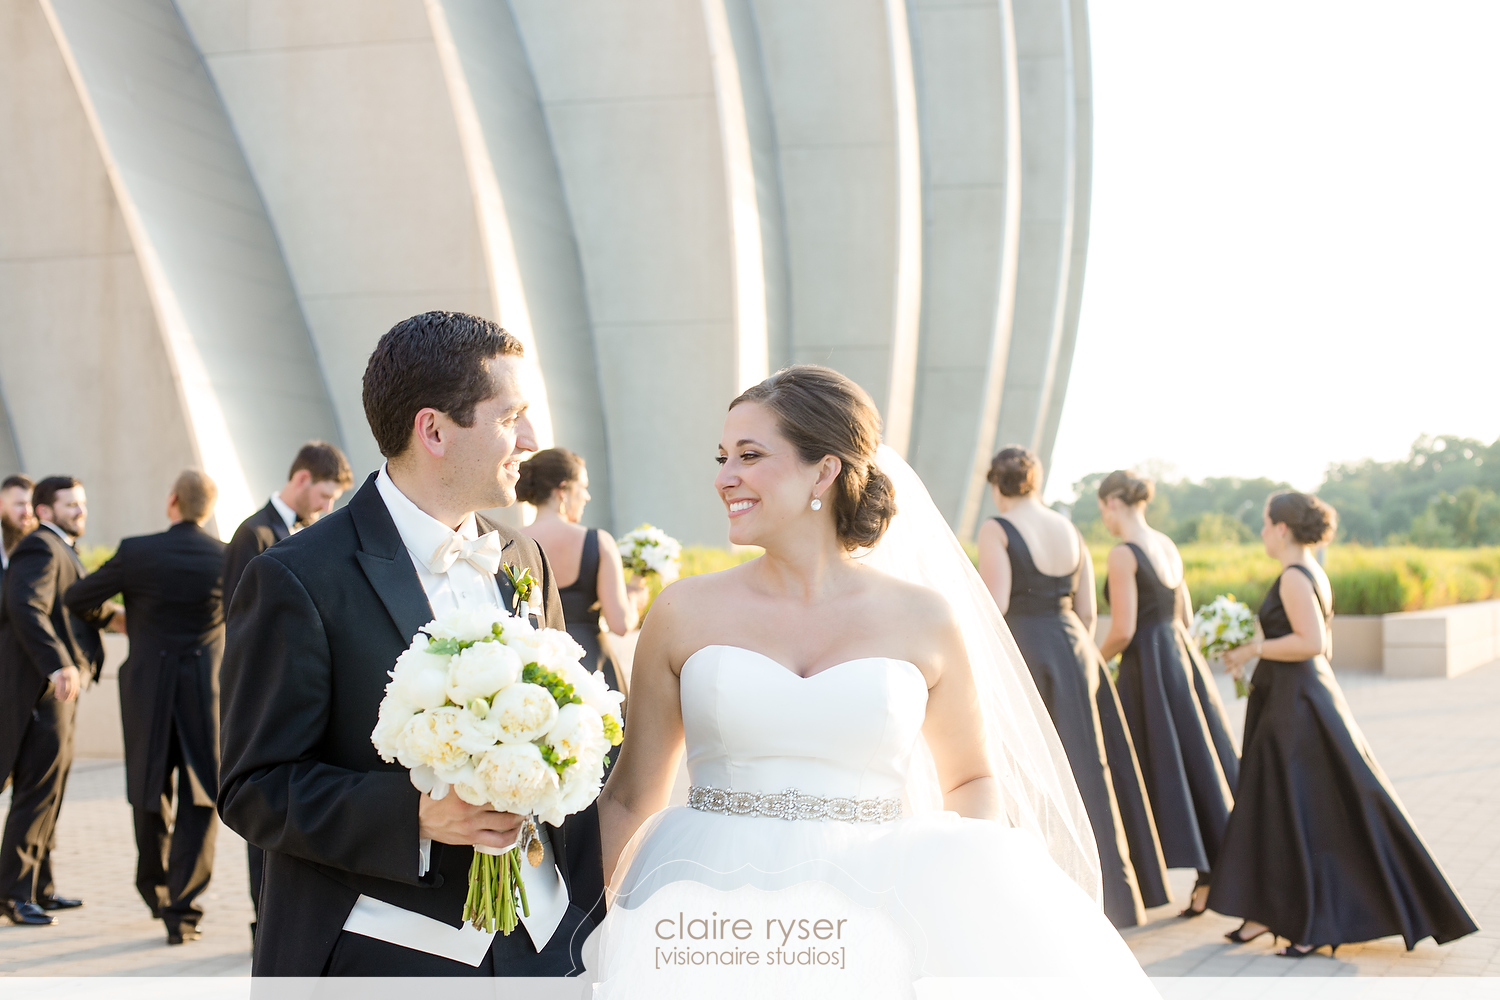 Real Weddings: Megan + Jorge's Sophisticated Modern Gallery Wedding